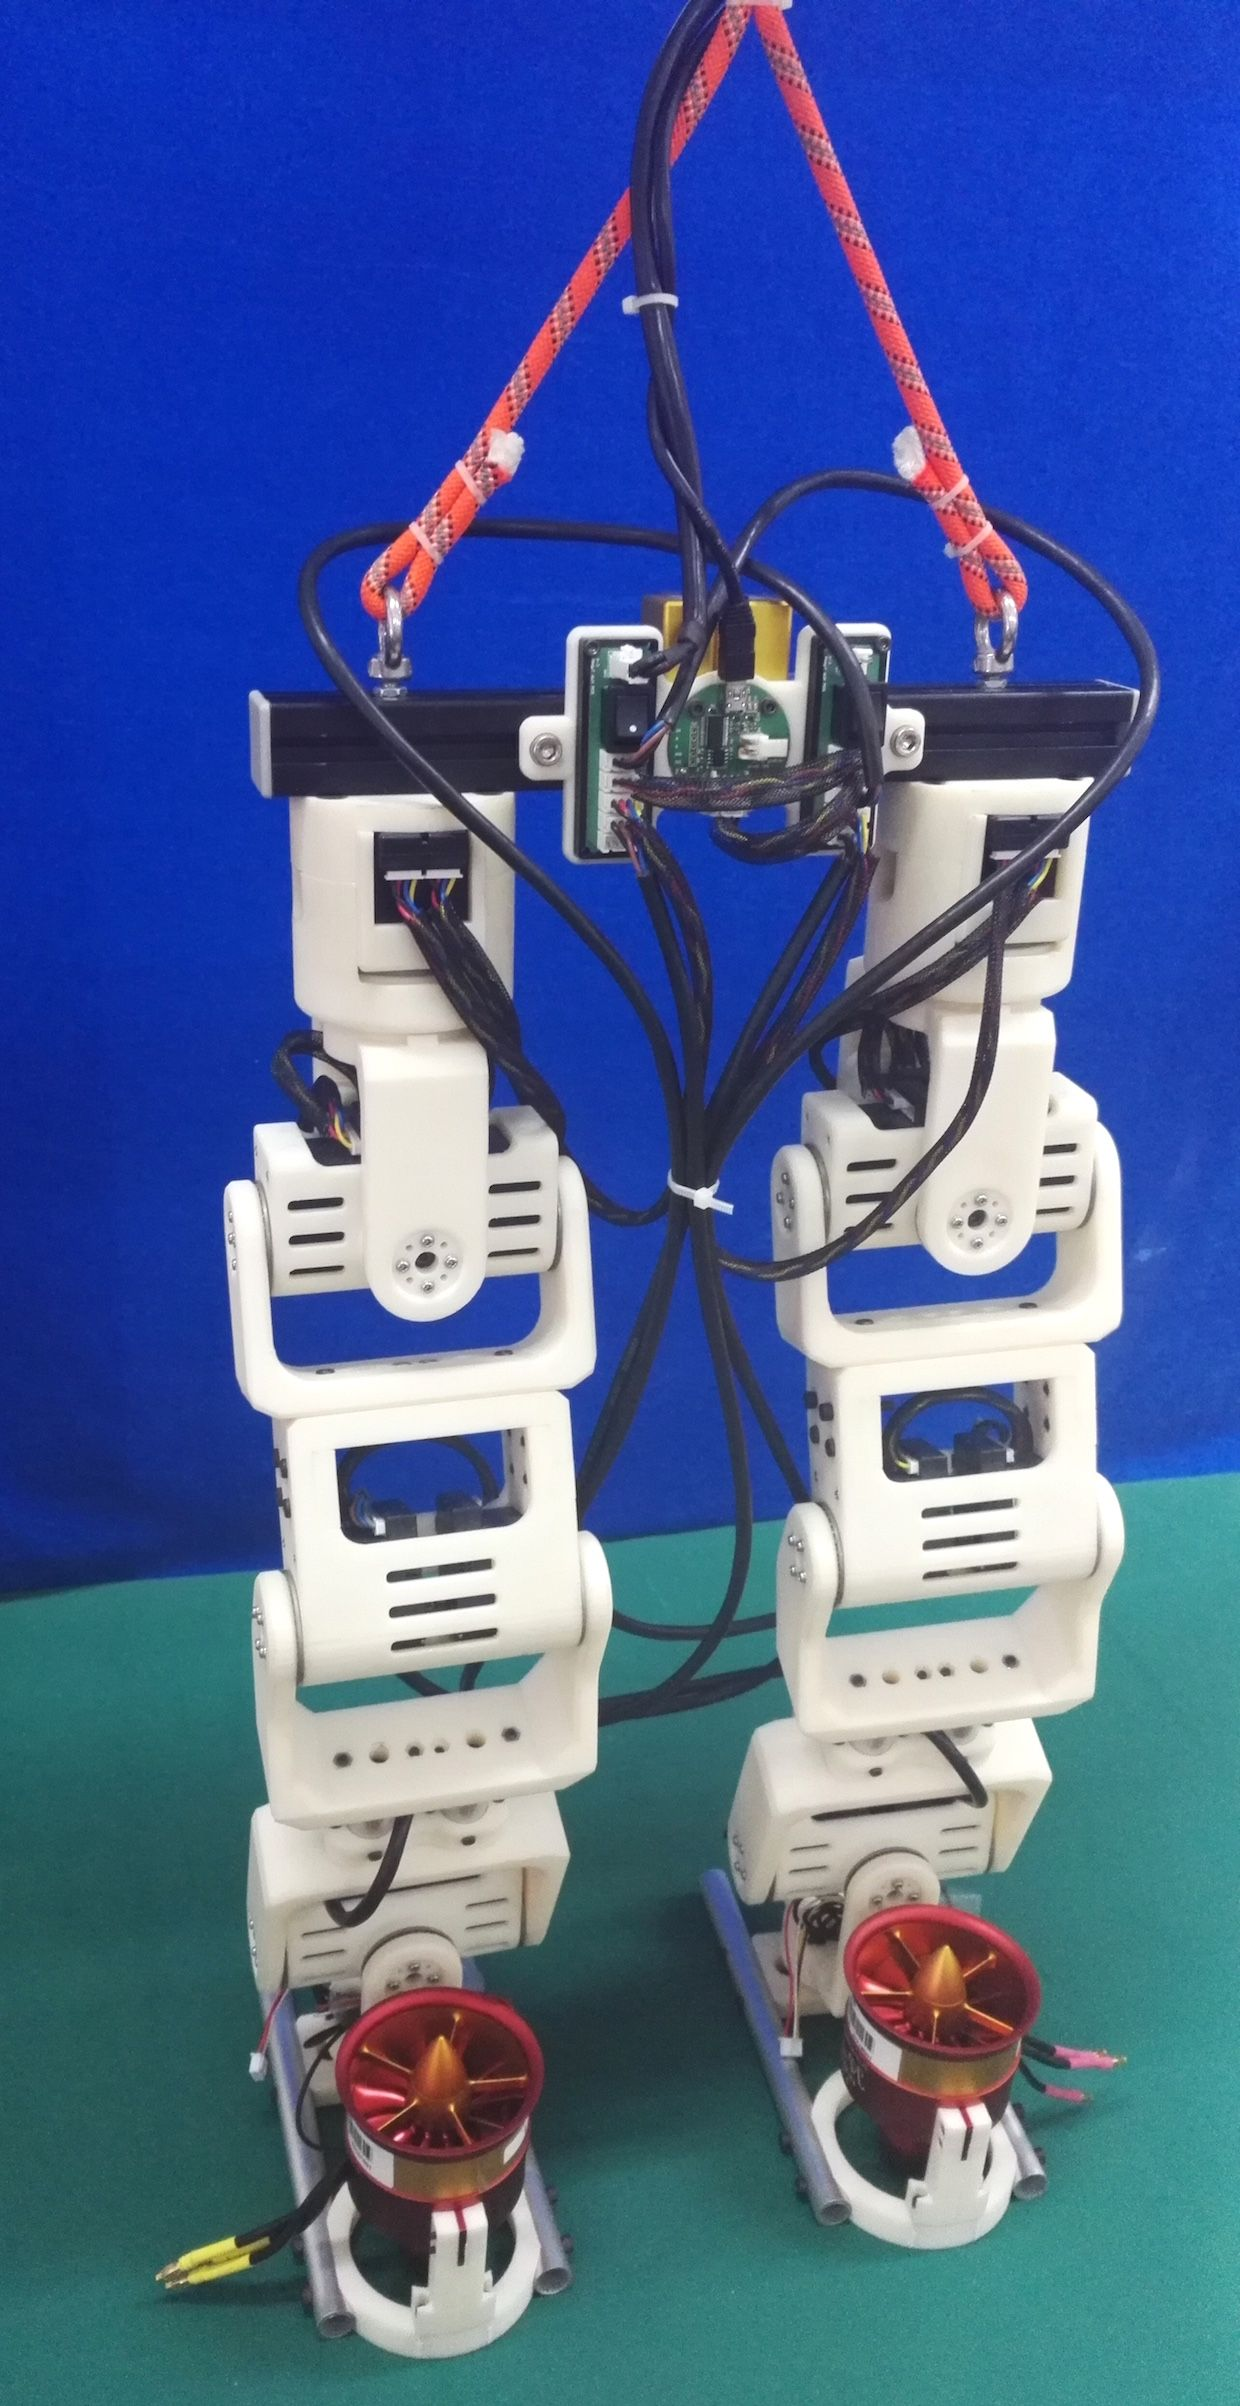 Humanoid robot legs with jet thrusters